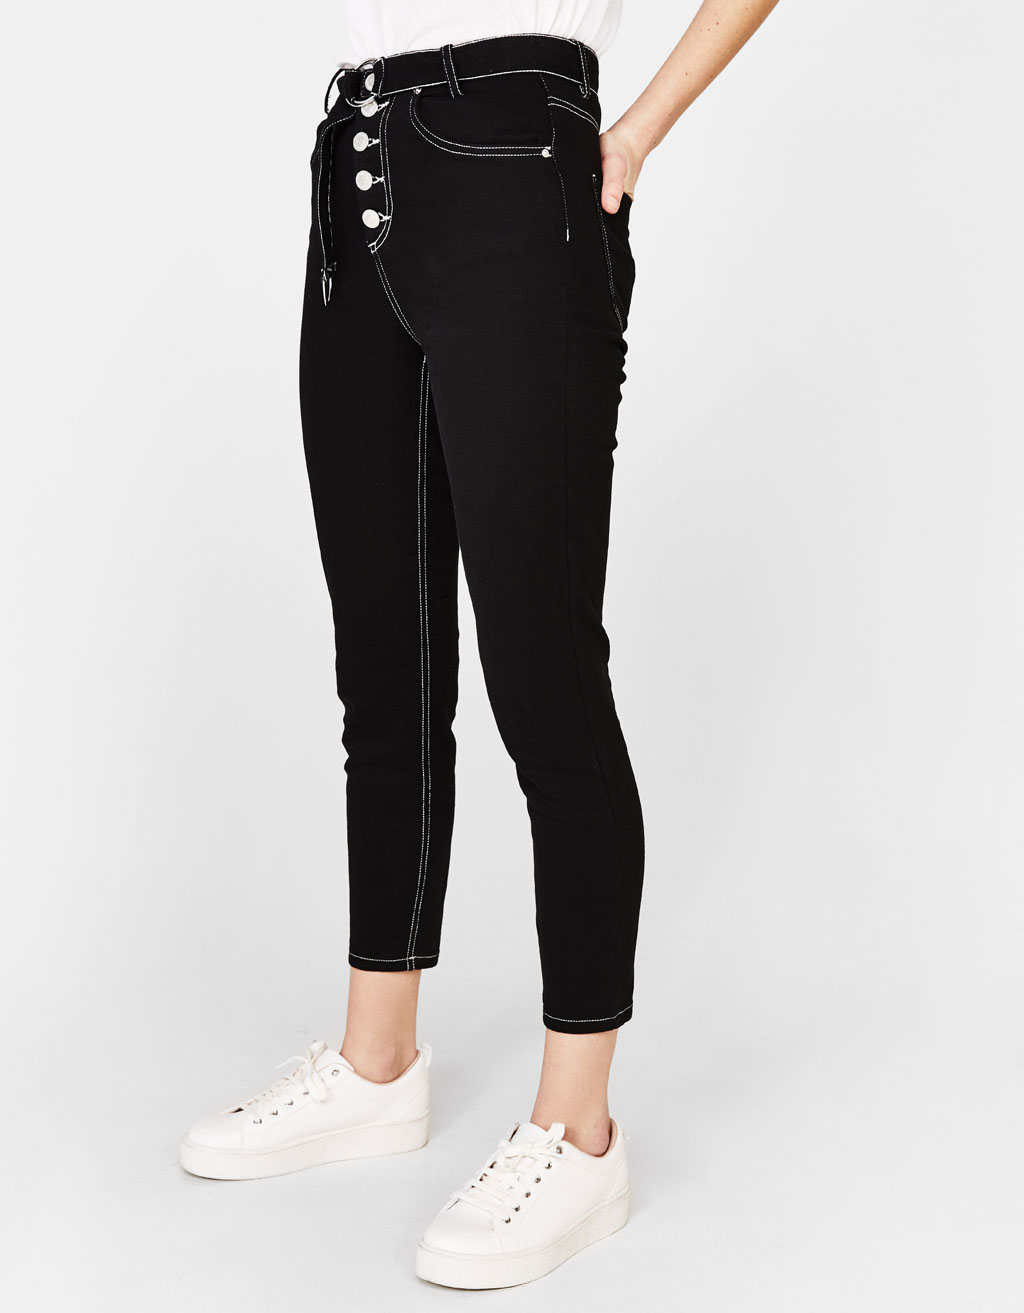 High Waist trousers with contrasting seams